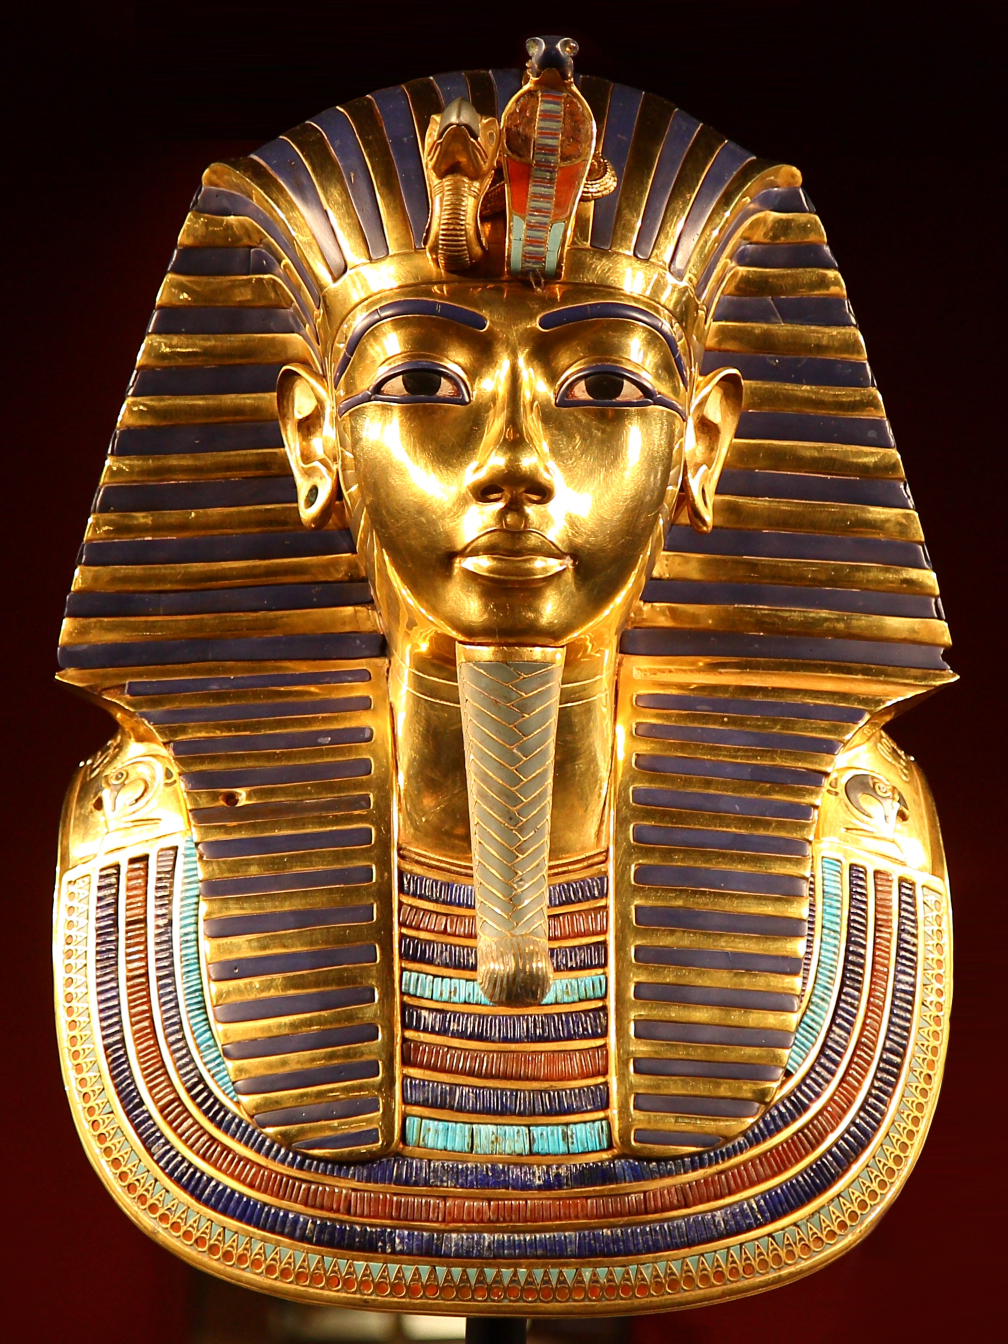 Everyone ogles over the treasures of King Tut's tomb — but few know how messy the recovery of the mummy was